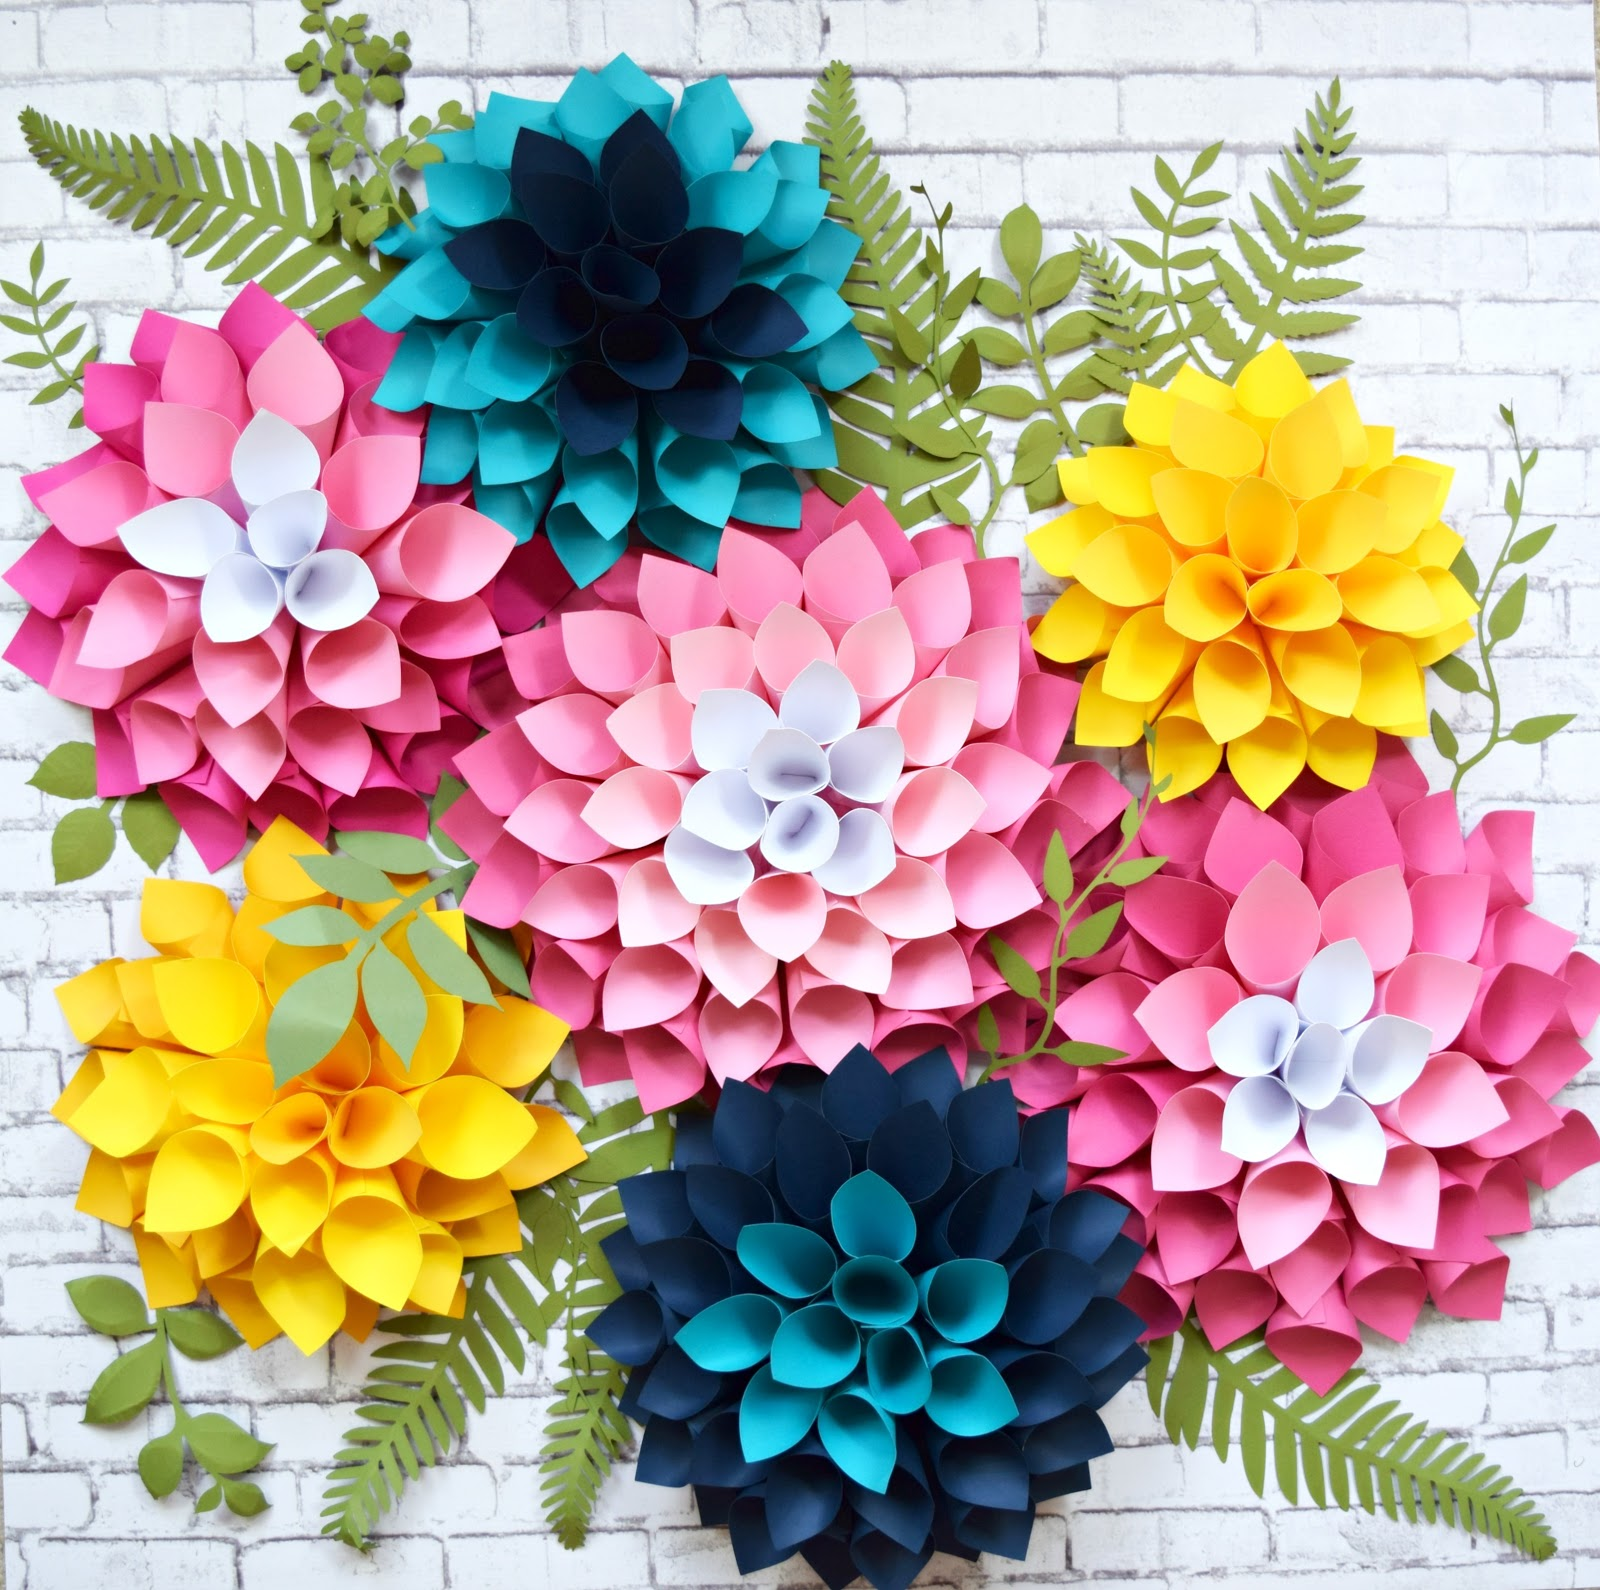 Diy Giant Dahlia Paper Flowers How To Make Large Paper Dahlias